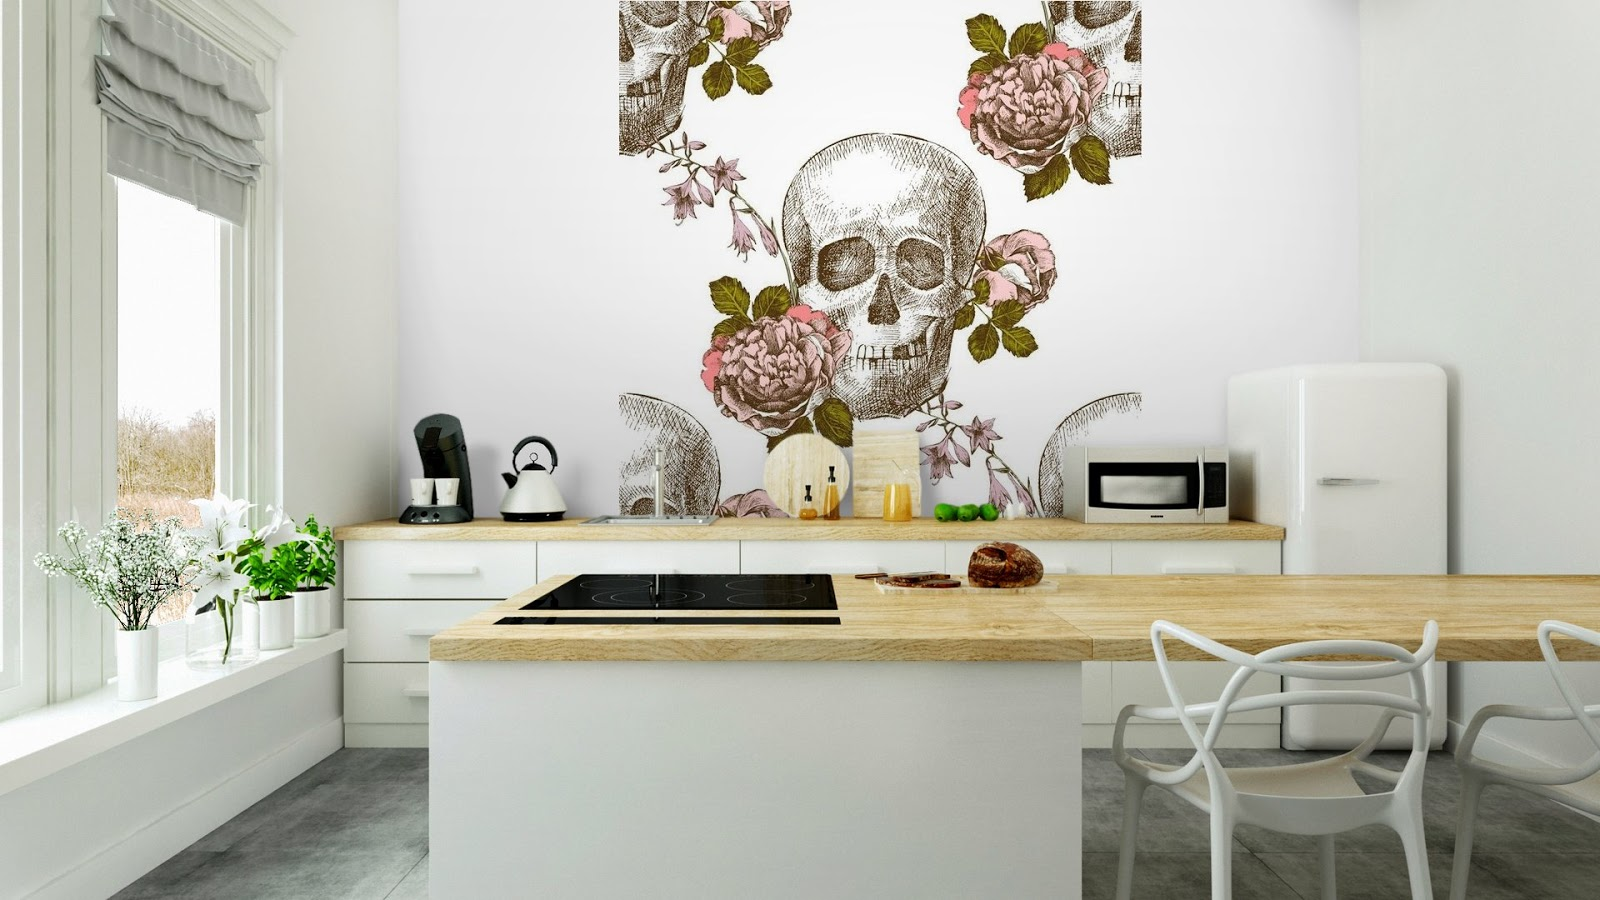 Formidable Joy | Formidable Joy Blog | Home | Lifestyle | 5 offbeat ways to personalize a wall